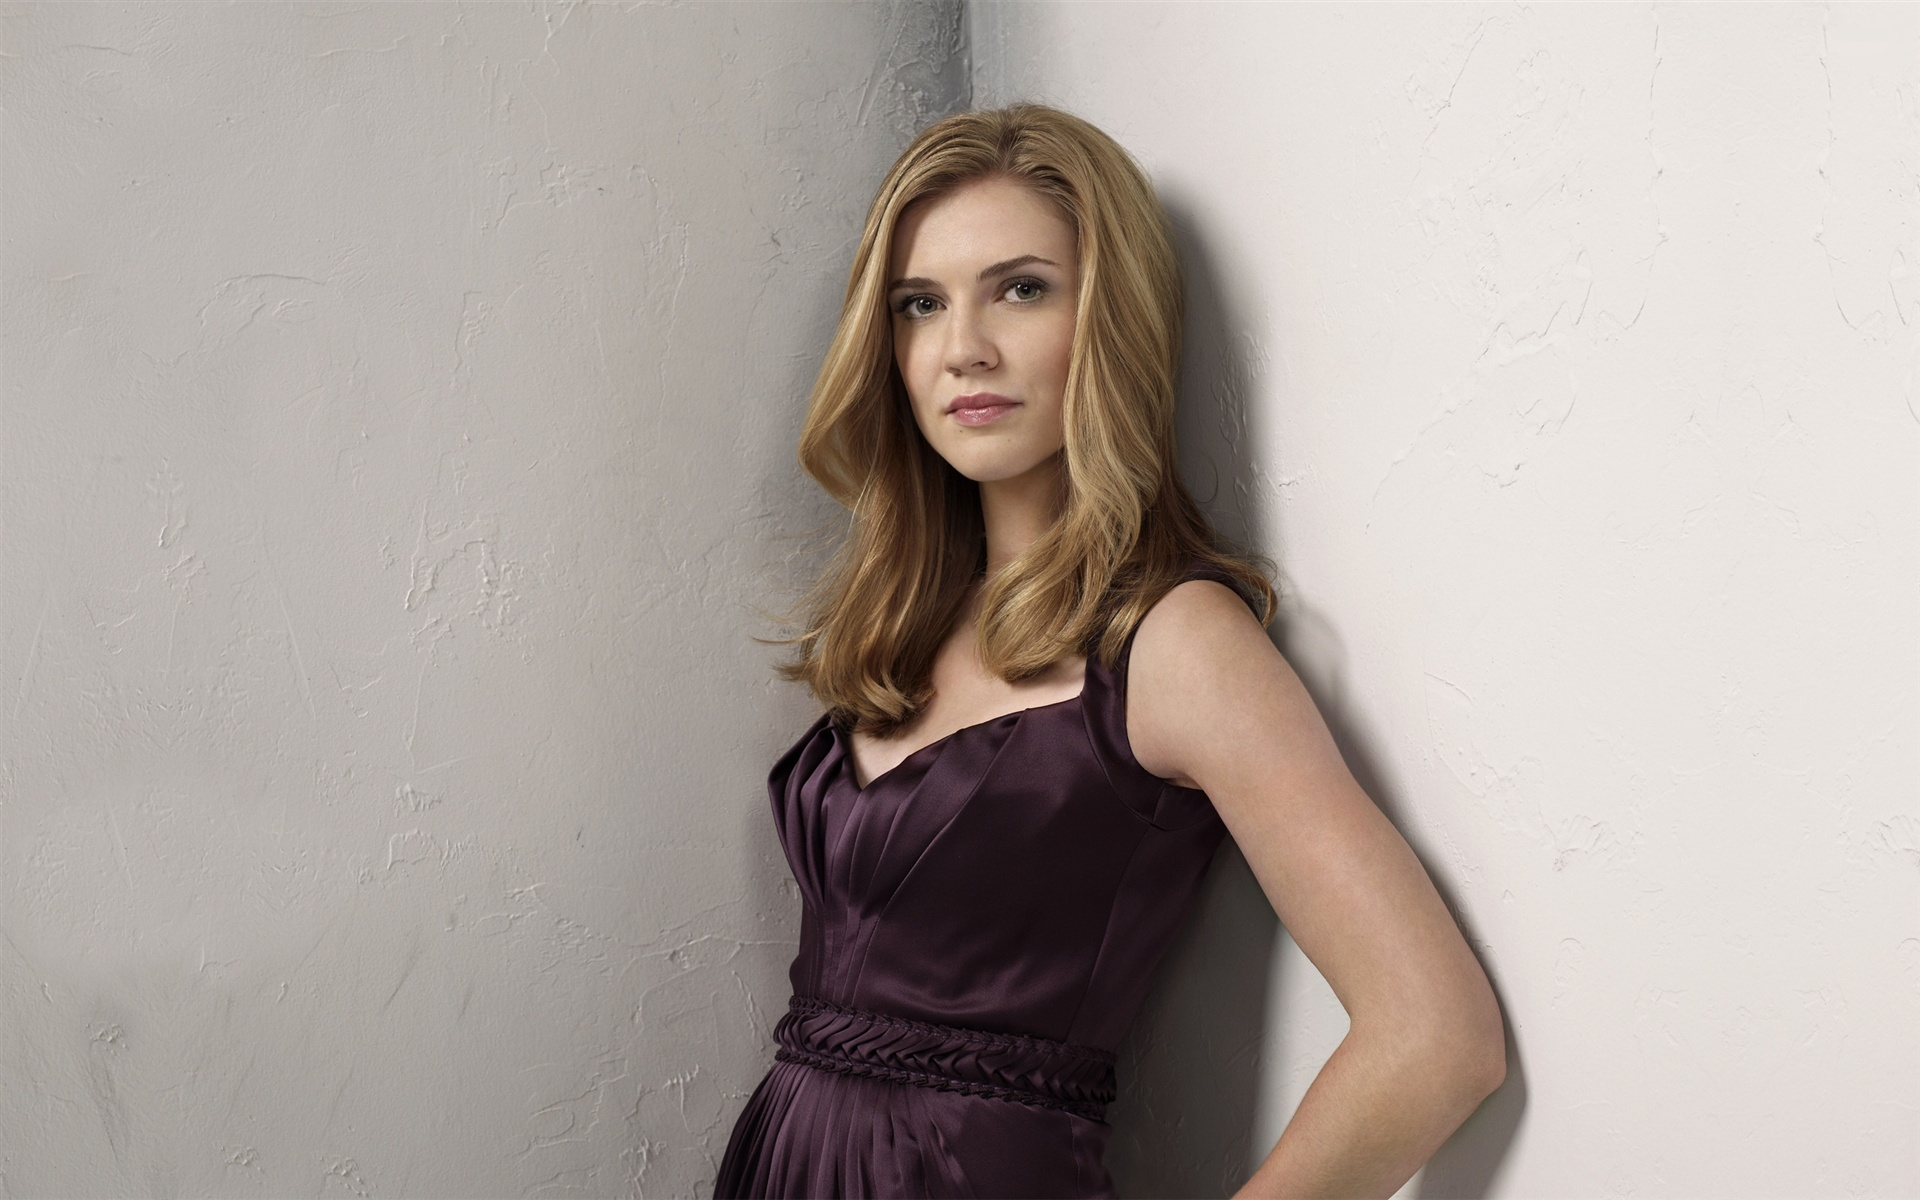 Sara Canning 01 wallpaper - 1920x1200